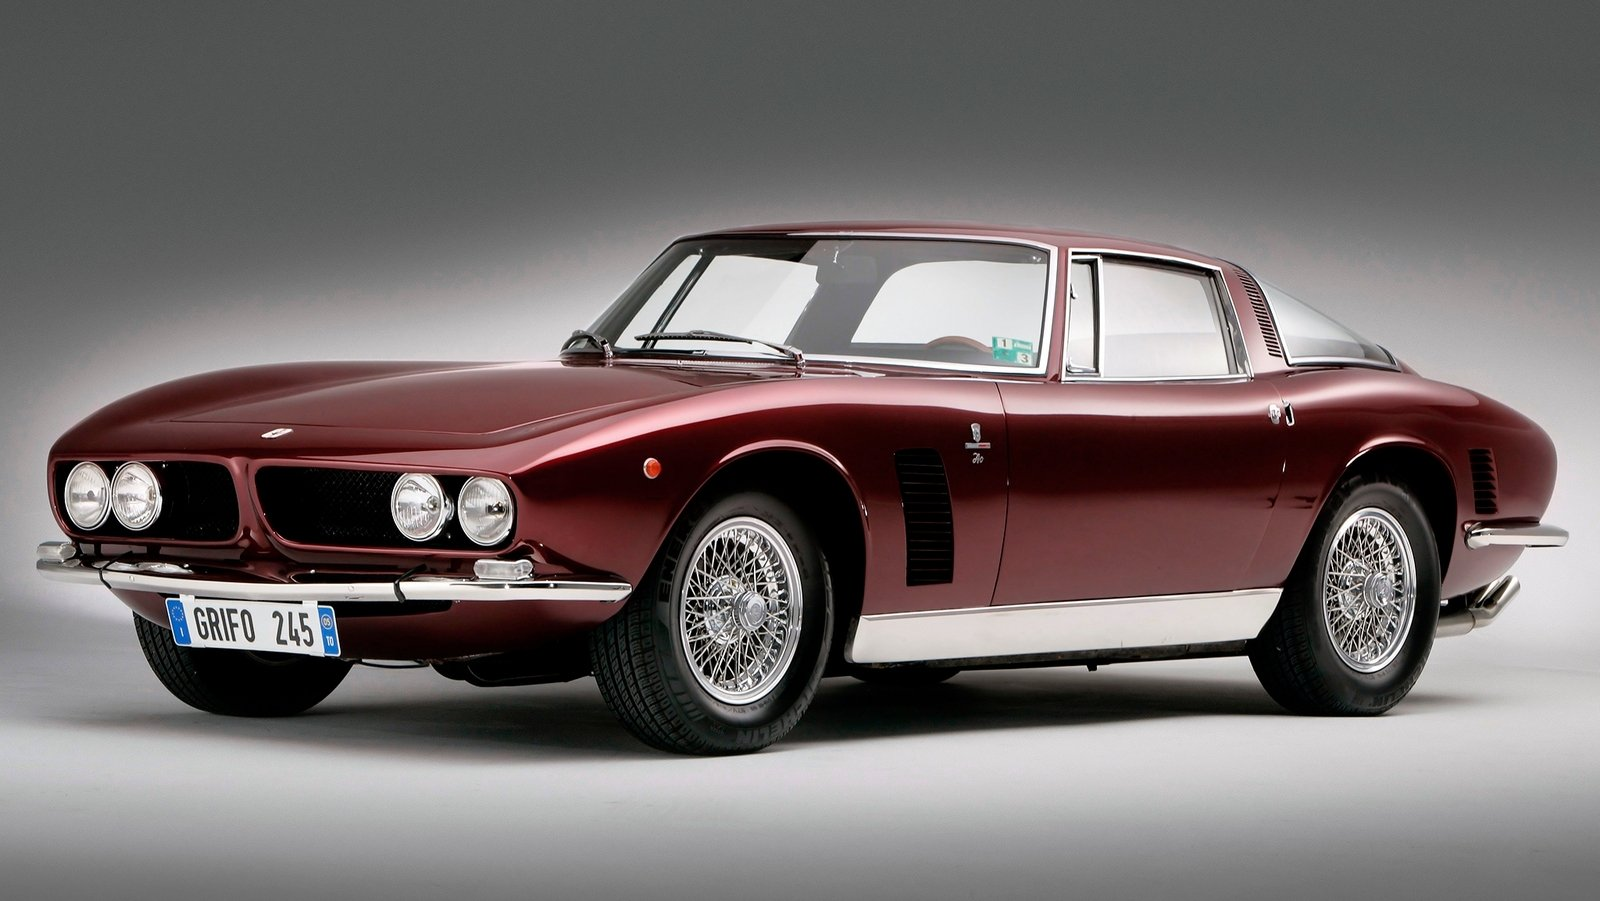 1963 1975 Iso Grifo Picture 658799 Car Review Top